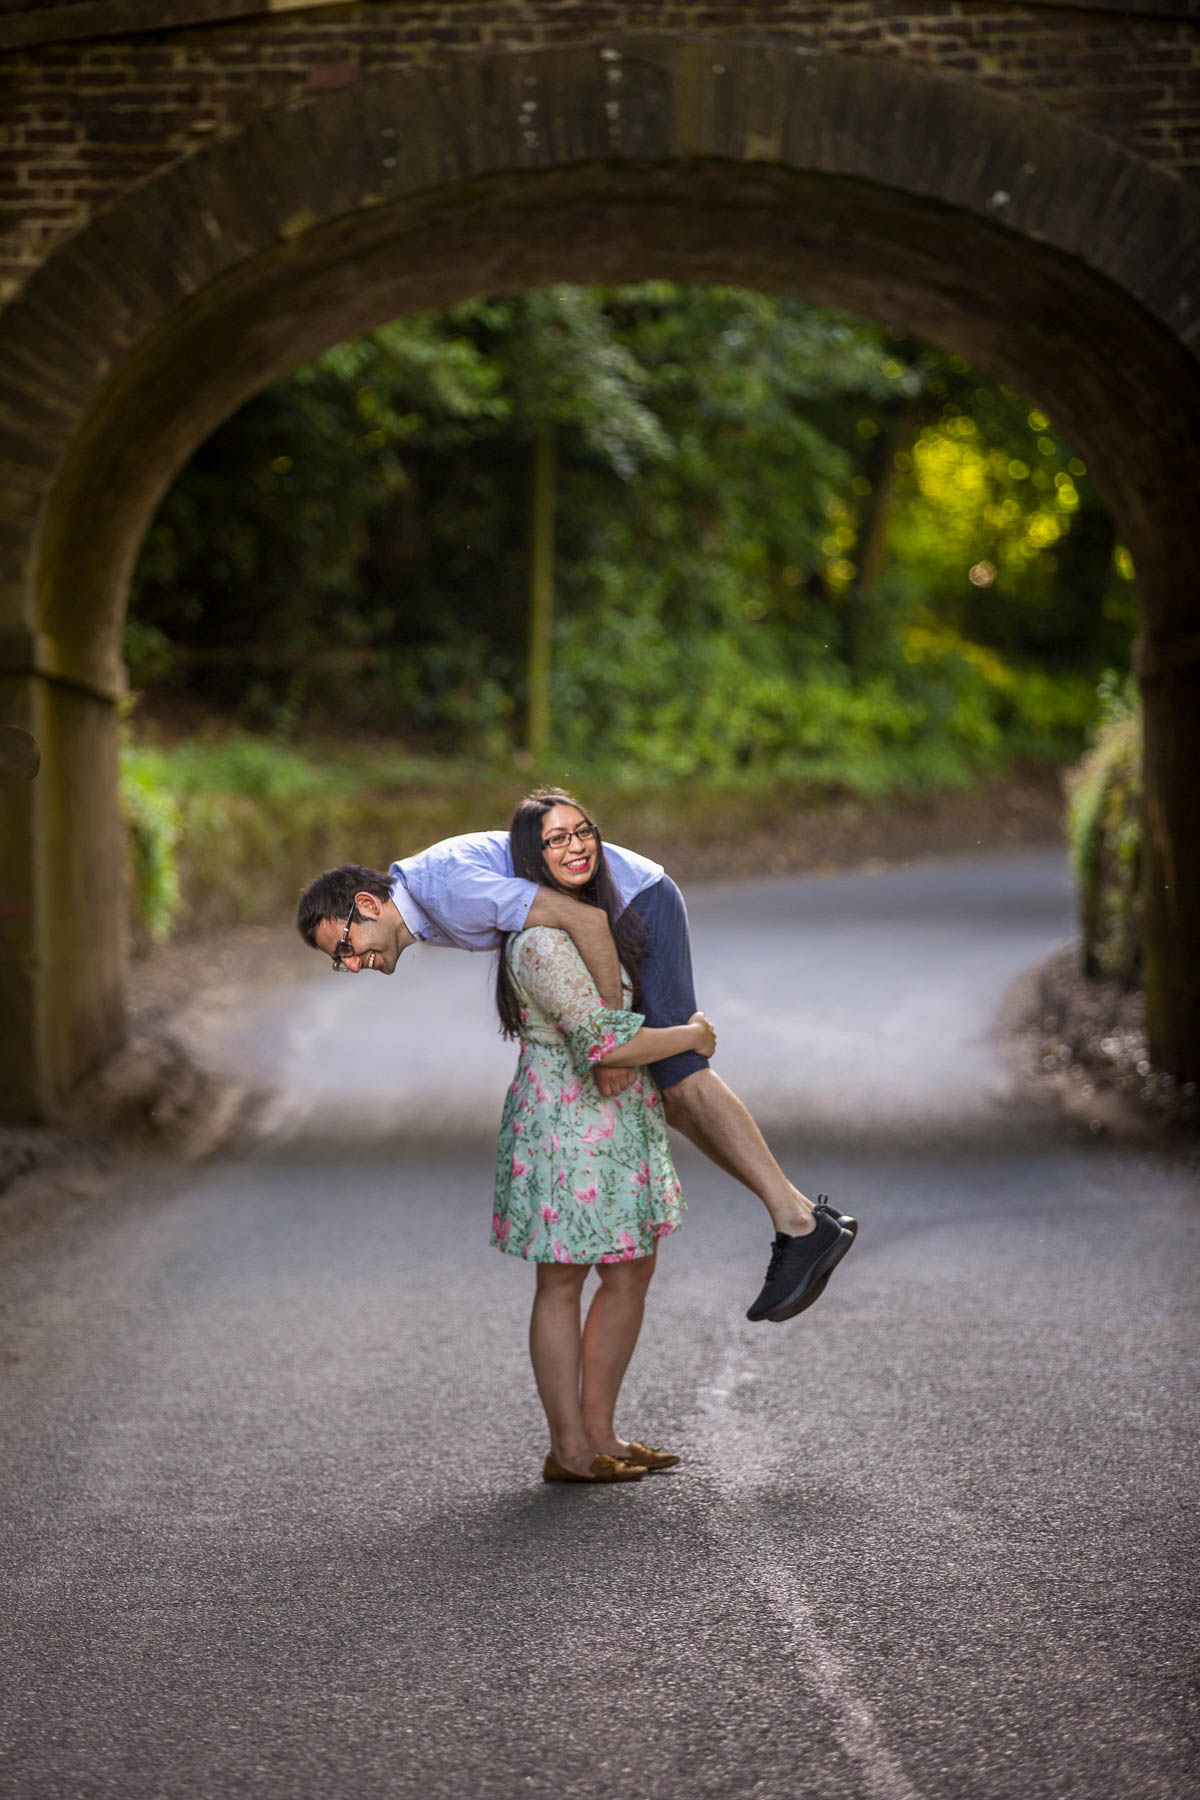 pre-wedding-engagement-shoot-bath-asian-wedding-photographer-london-natalia-smith-photography-0011.jpg